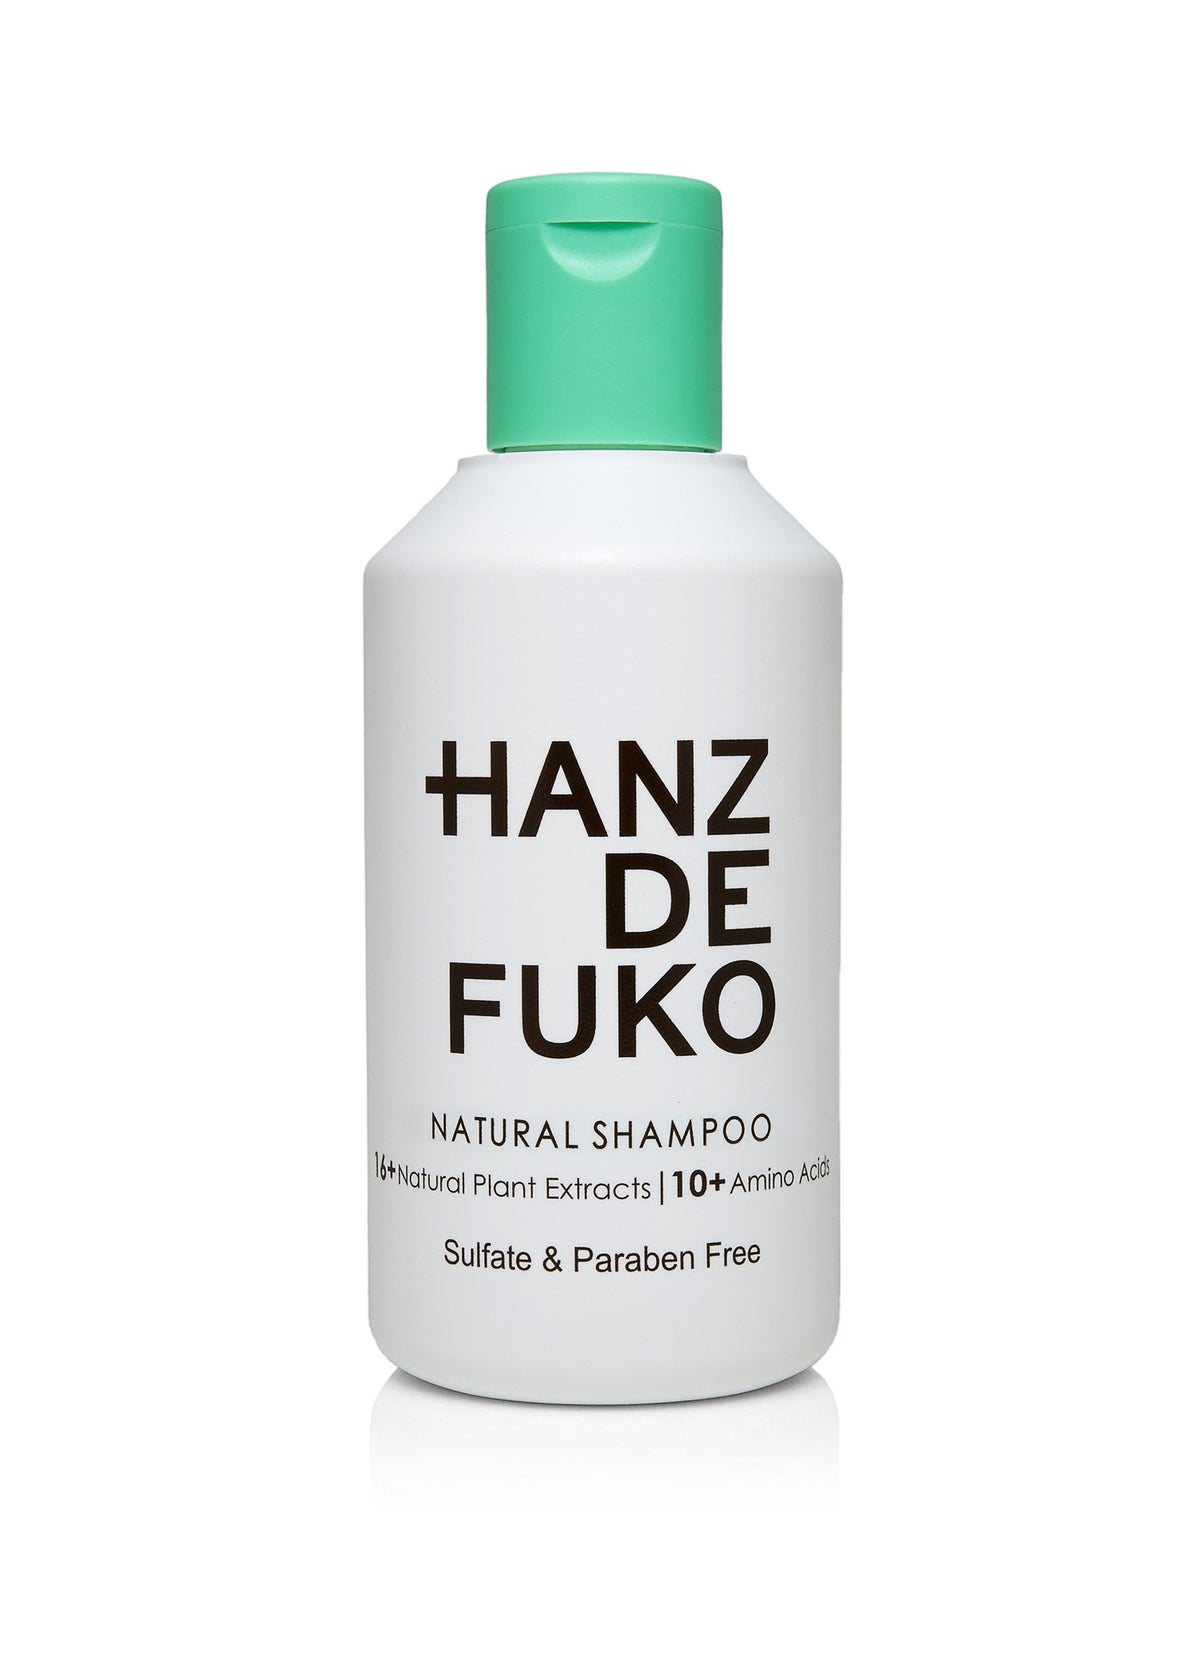 Image of Hanz De Fuko Natural Shampoo